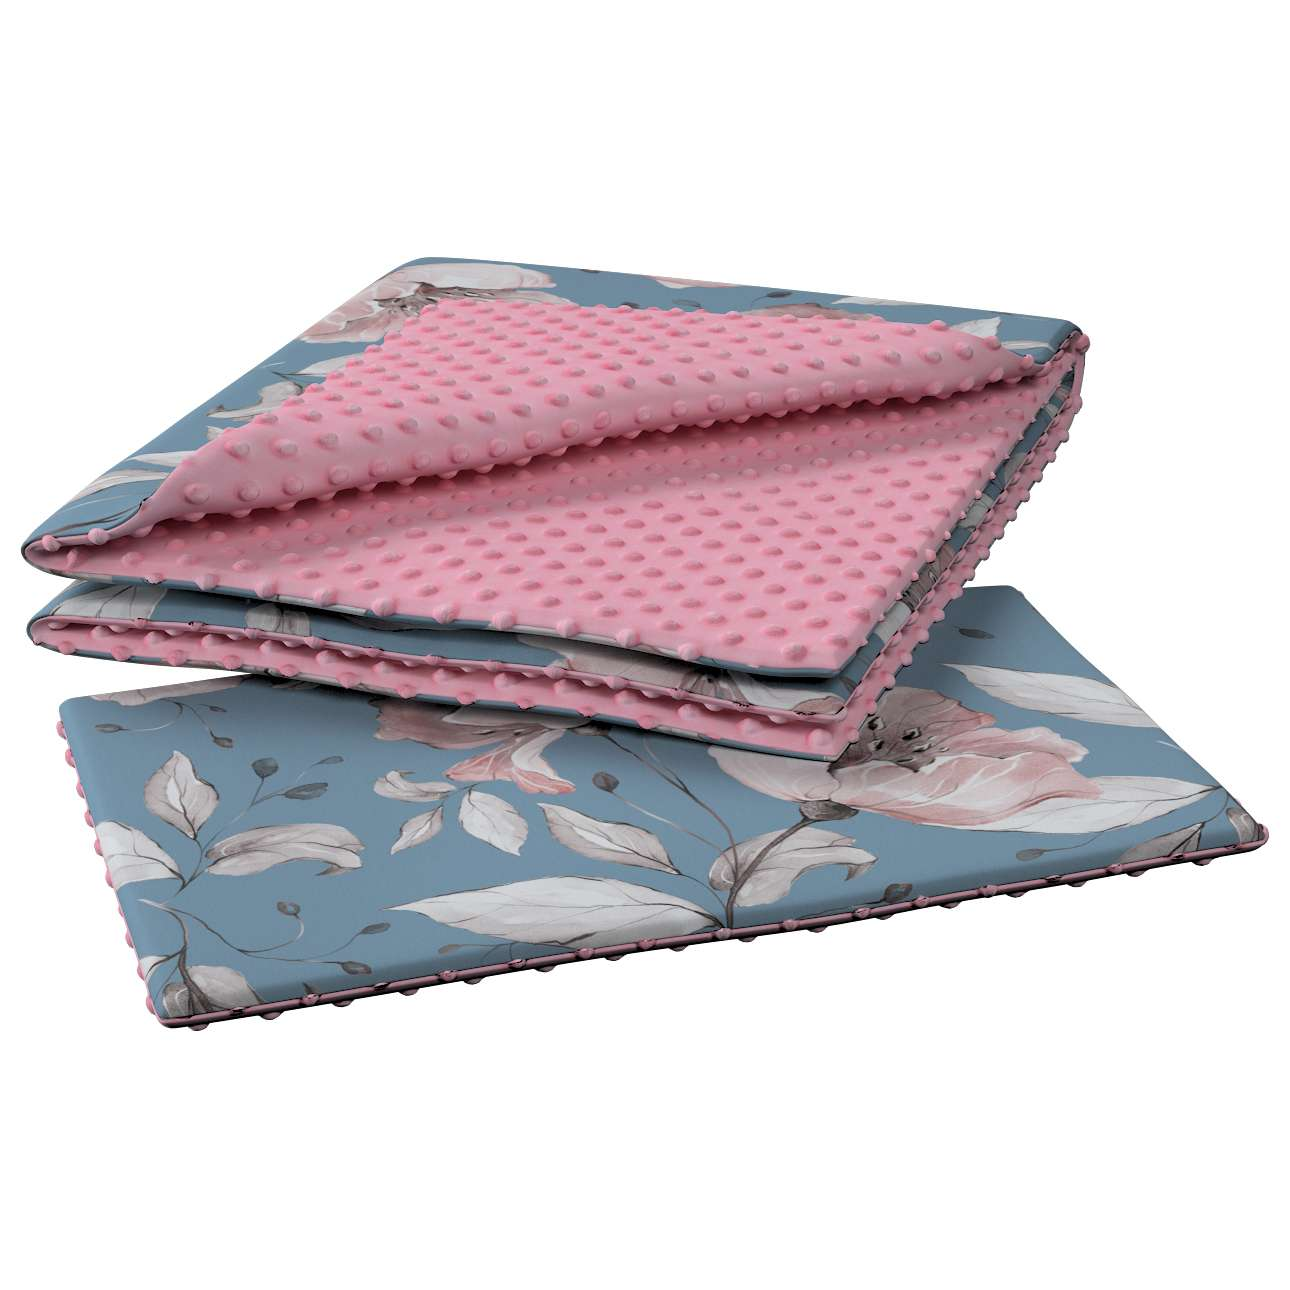 Minky-Babydecke von der Kollektion Magic Collection, Stoff: 500-18